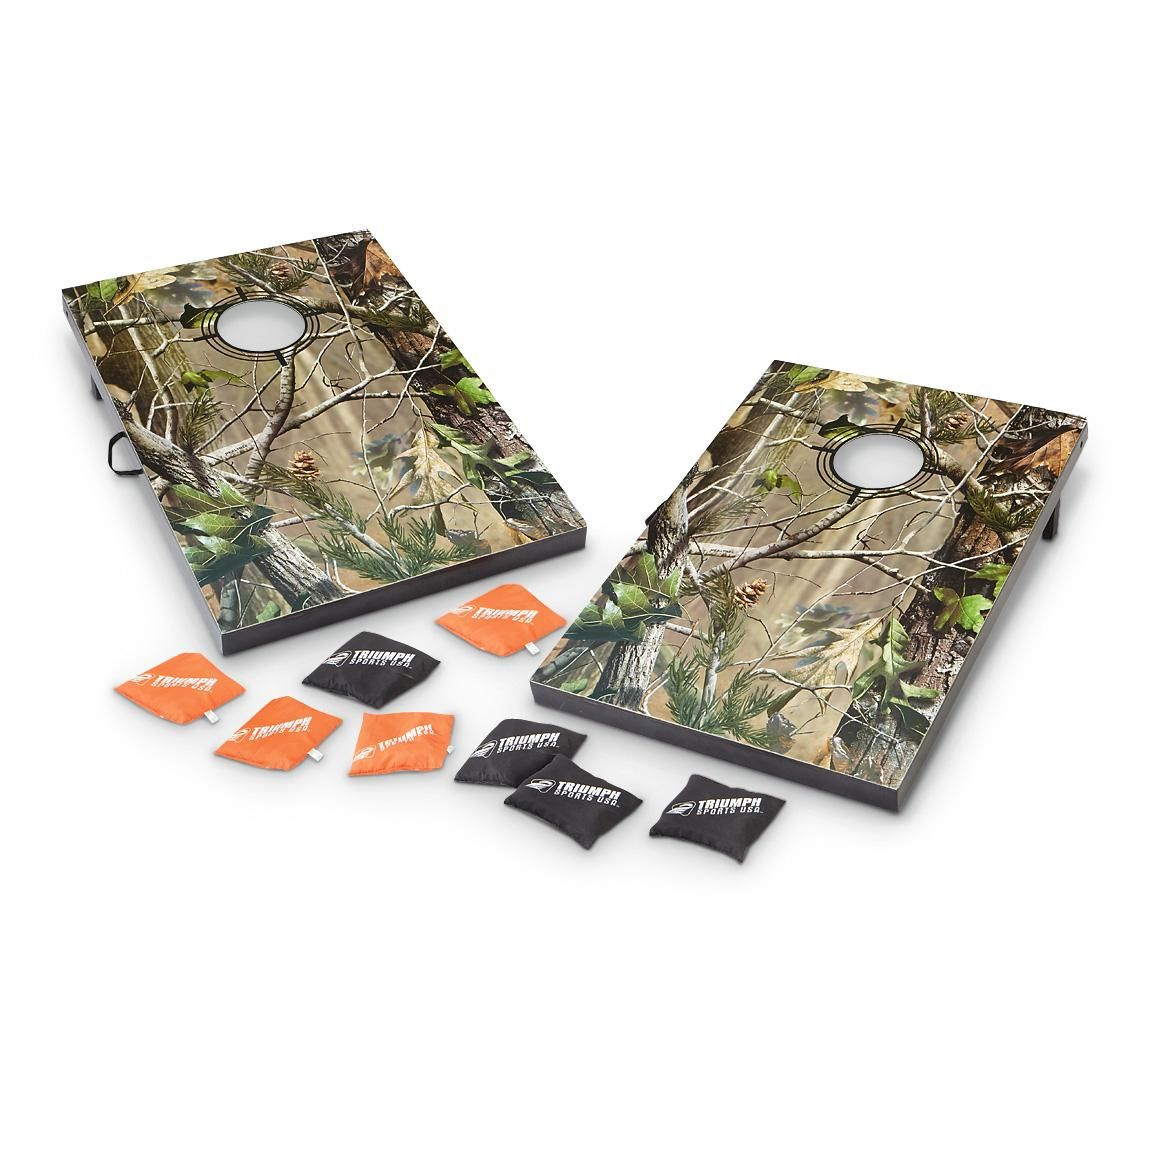 RealtreeR Camo Beanbag And Washer Toss Games Great Fun For The Outdoor Wedding Reception